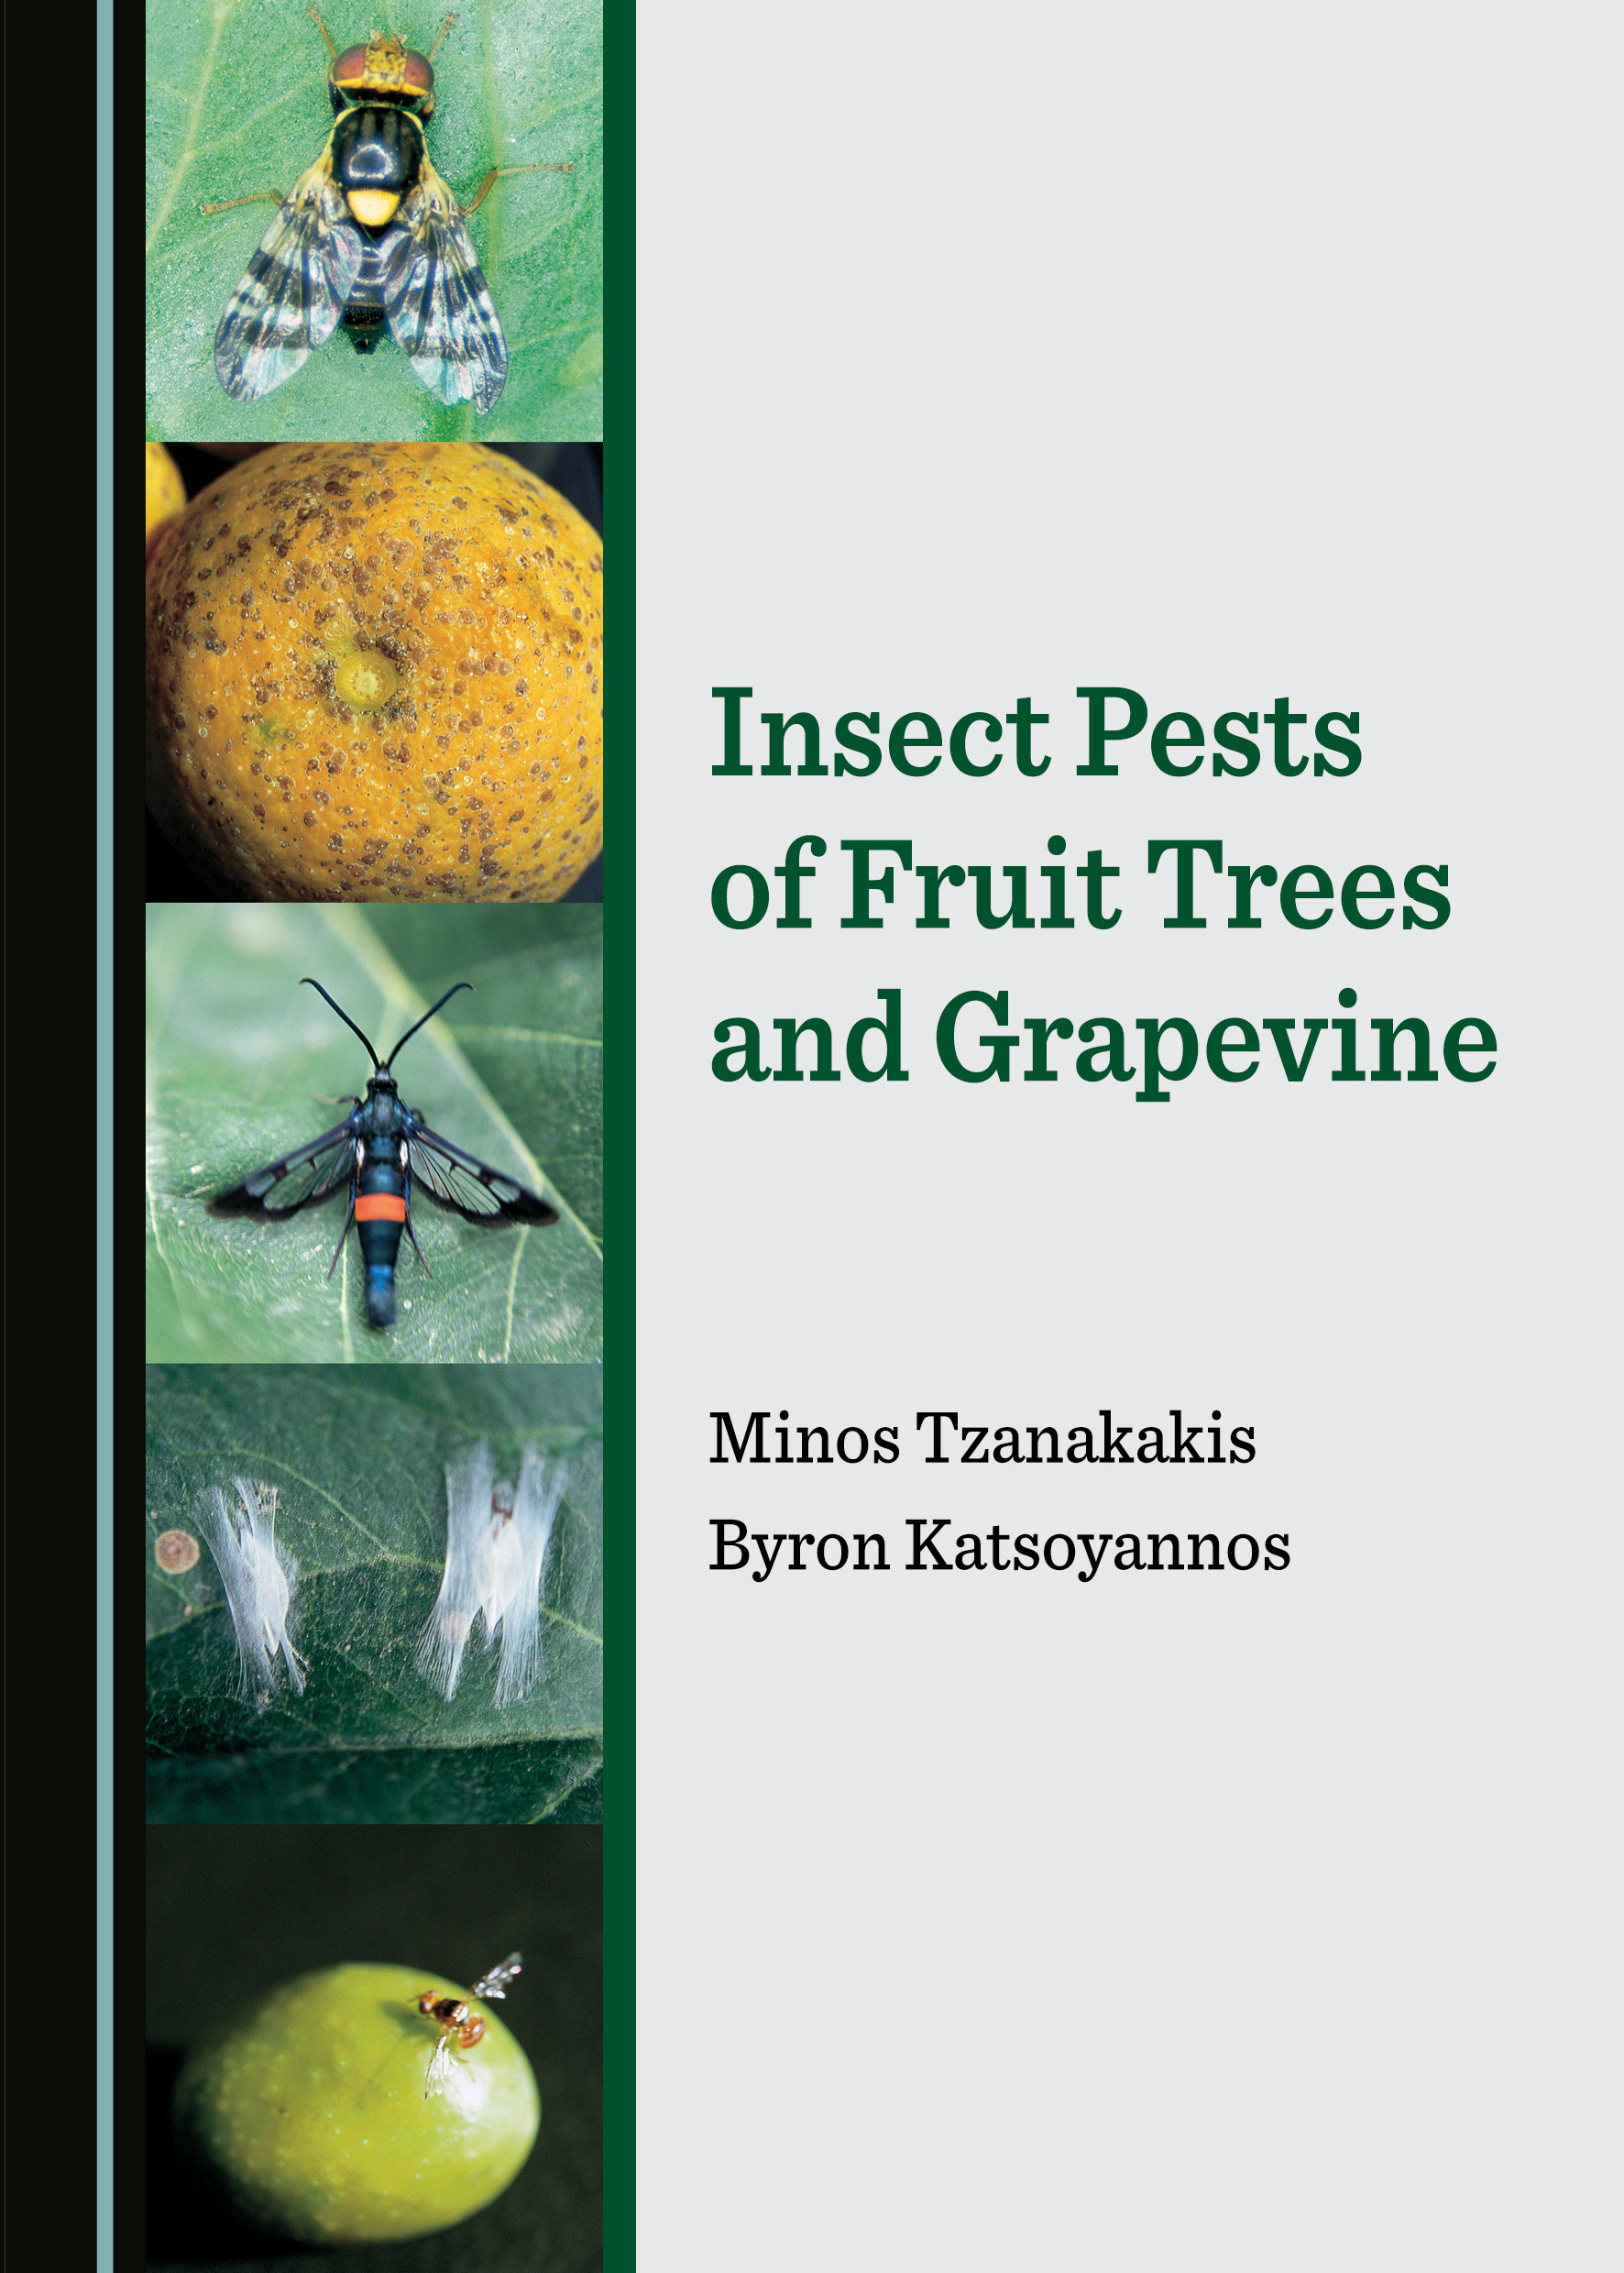 Insect Pests of Fruit Trees and Grapevine